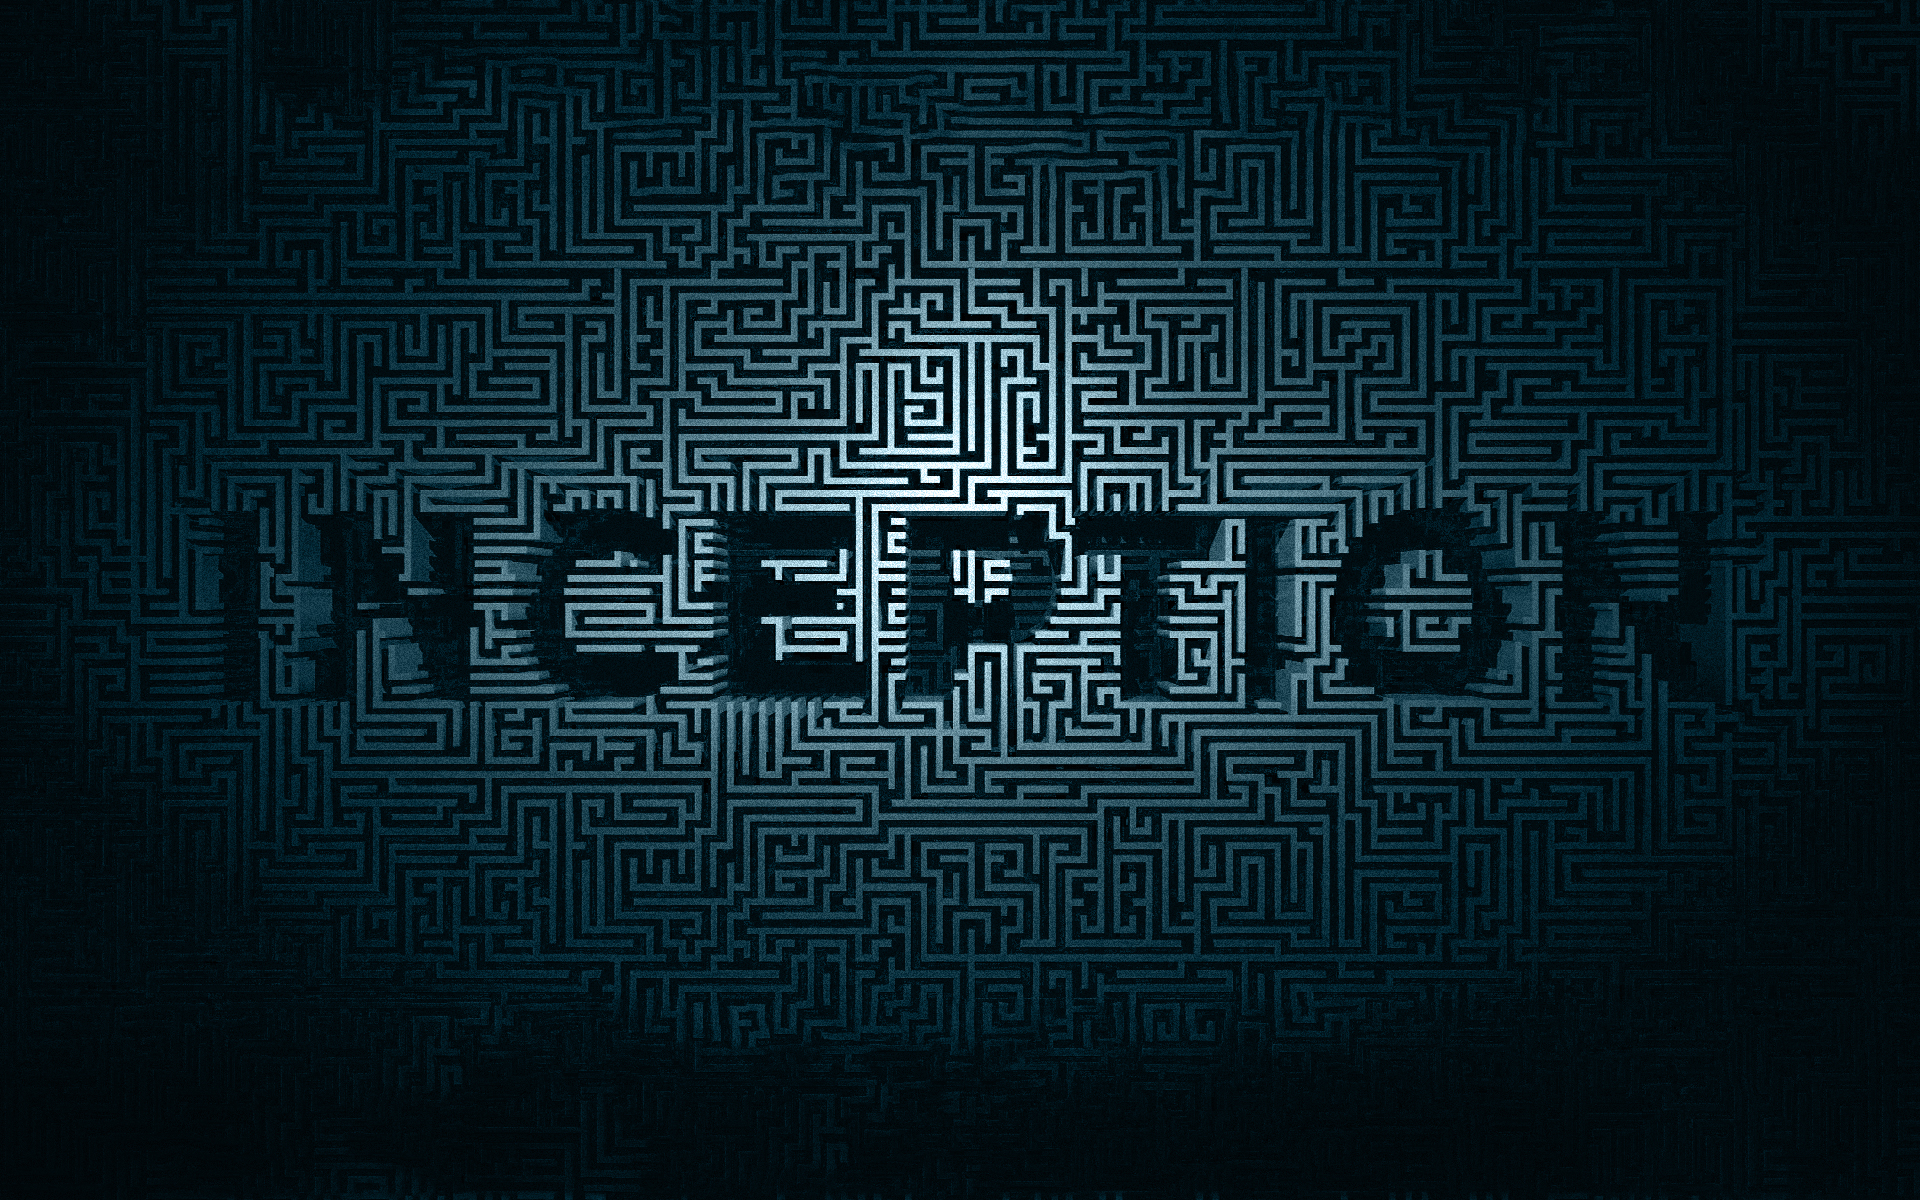 inception wallpapers high quality | download free